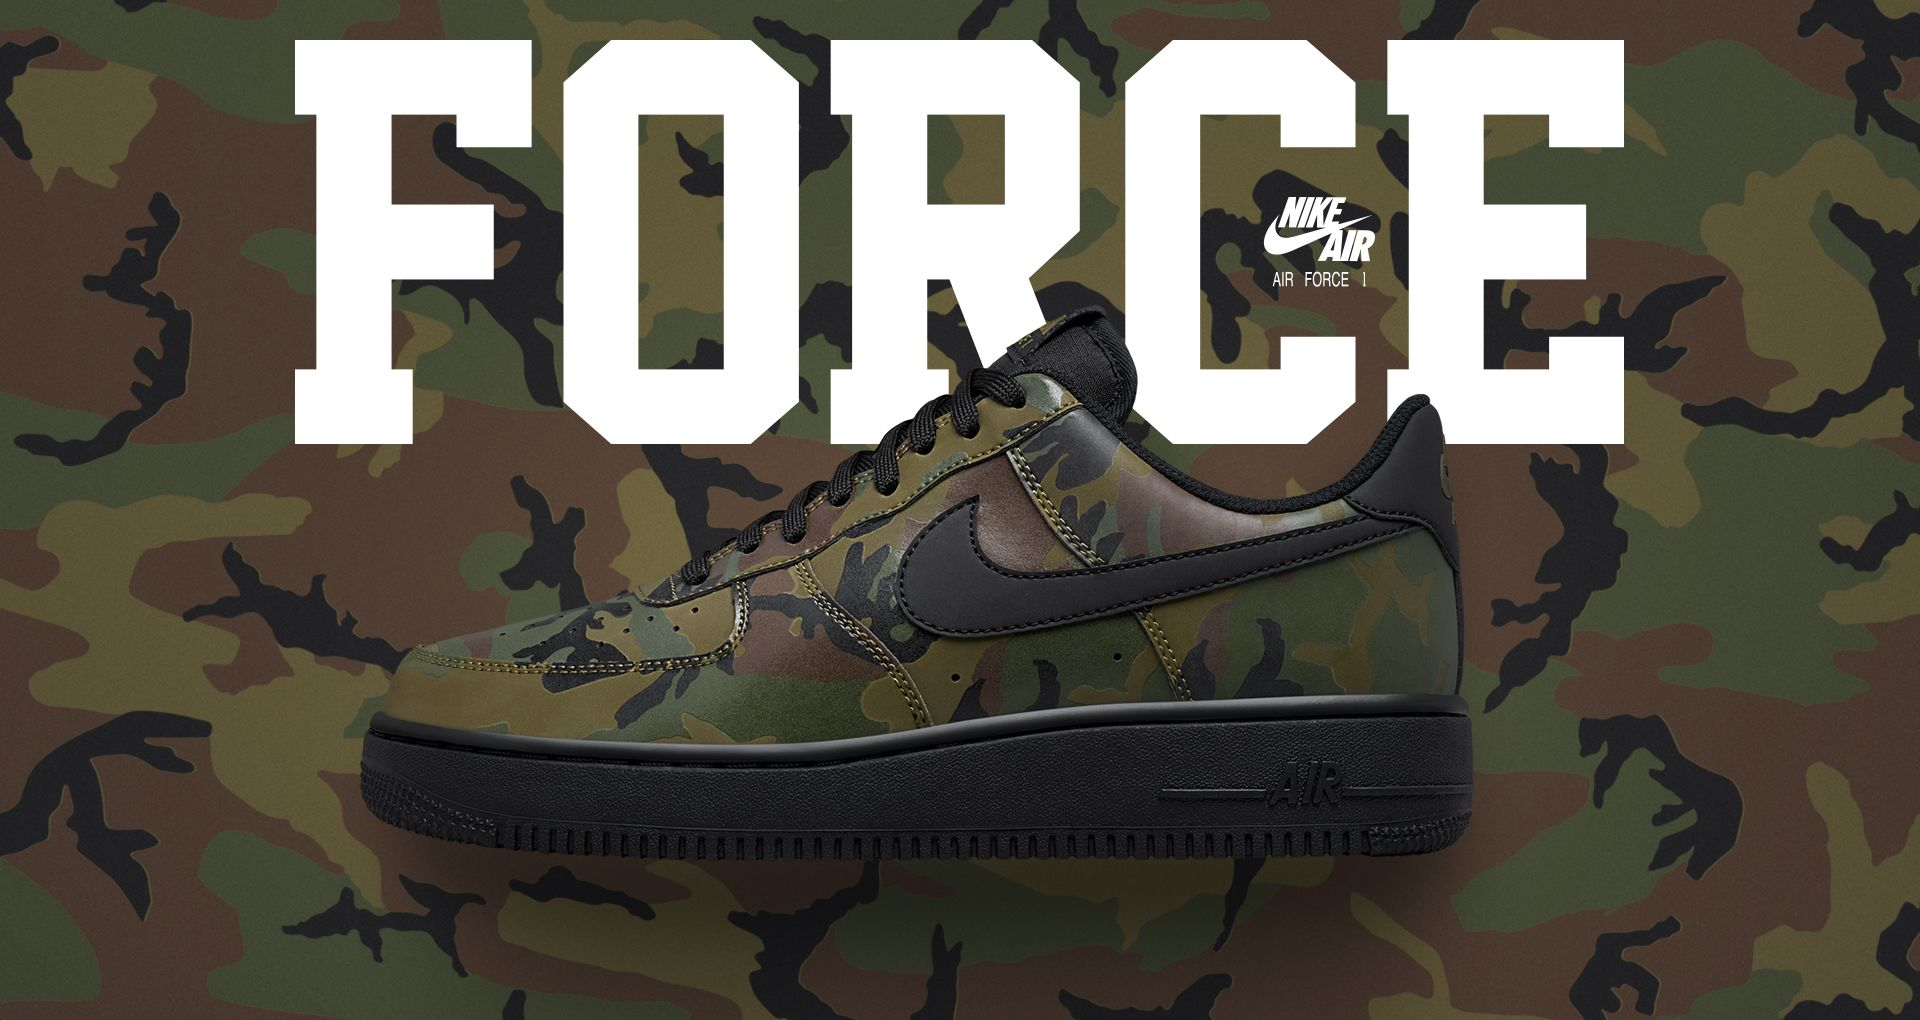 db39cc1f1851 Nike Air Force 1 Low 07  Medium Olive Camo Reflective  Release Date ...